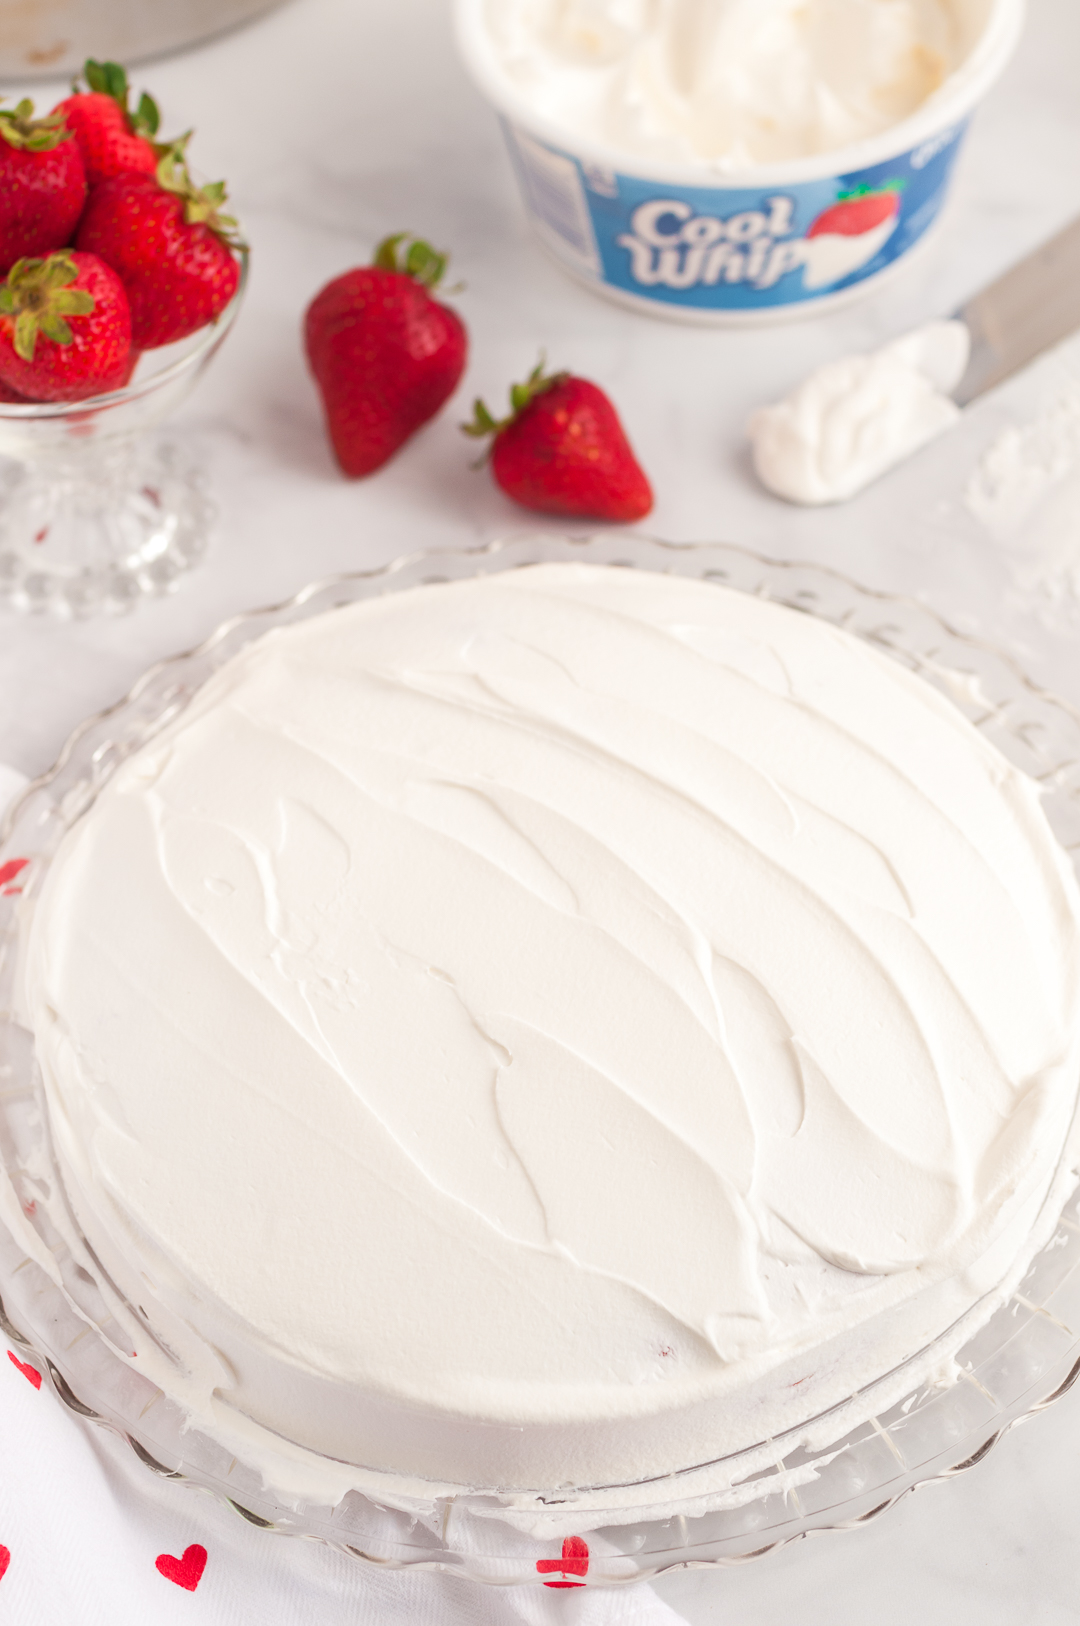 Cool Whip spread onto cake